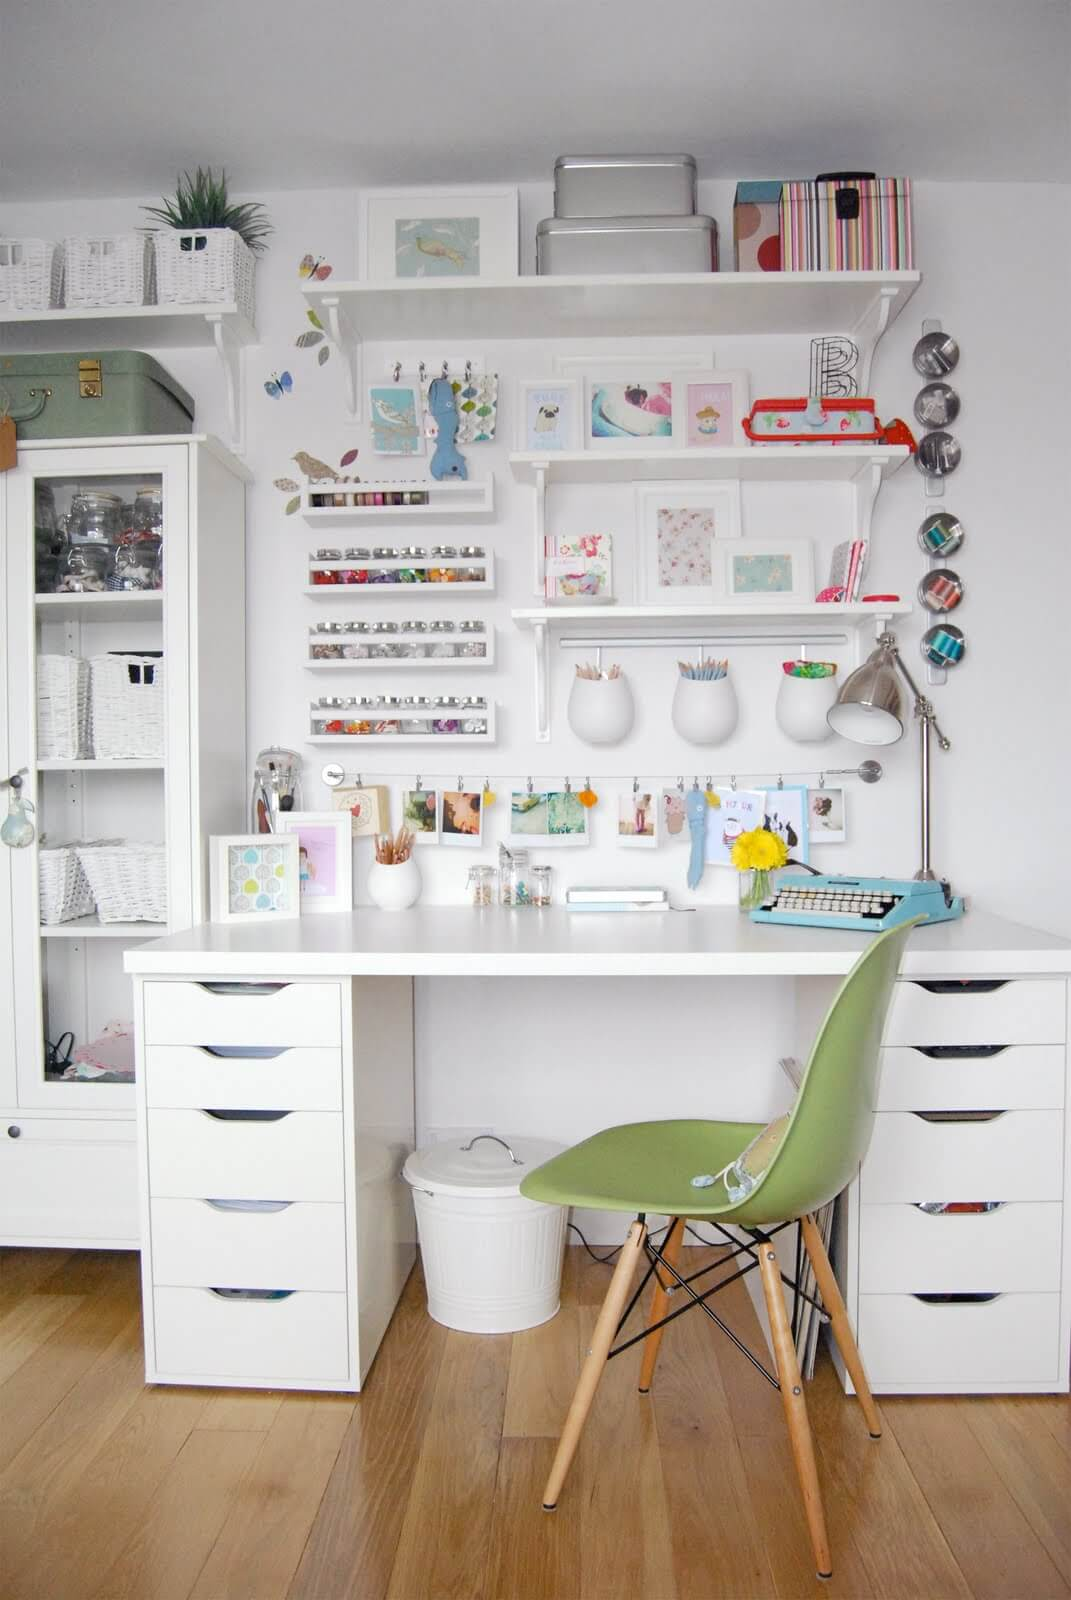 Home Office Home Office Organization Ideas Room For 45 Brilliant Home Office Organization Ideas To Boost Your Productivity diy Awesome And Diy Storage